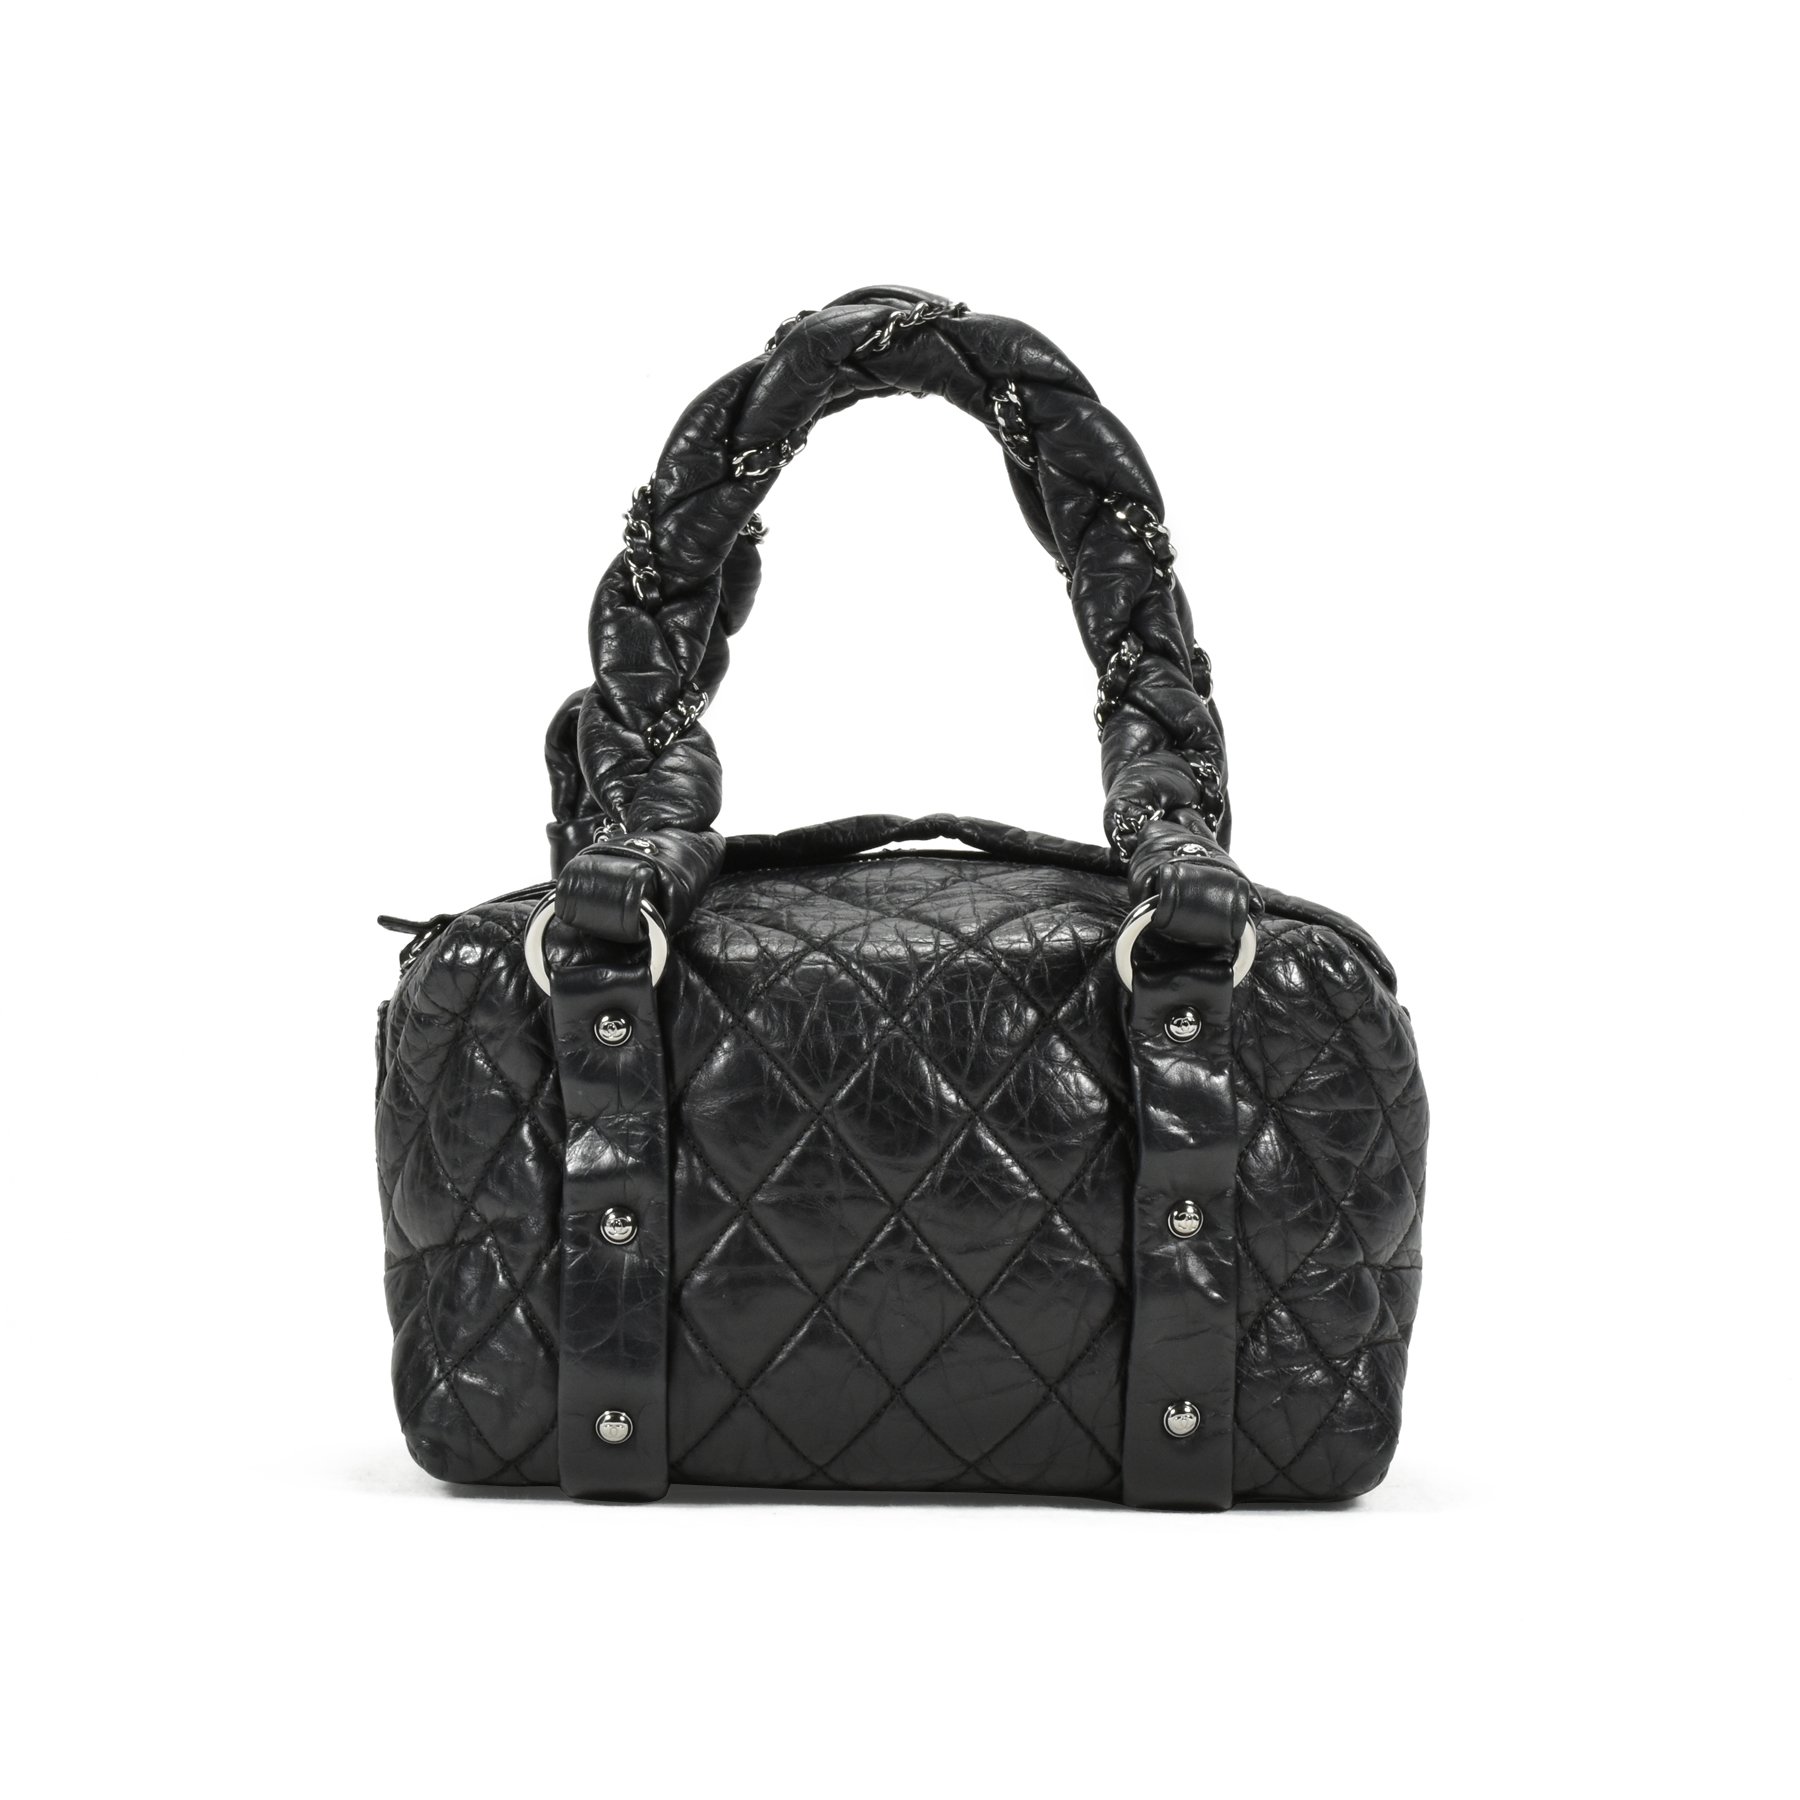 802bb7d427e958 Authentic Second Hand Chanel Lady Braid Small Tote Bag (PSS-200-00898) |  THE FIFTH COLLECTION